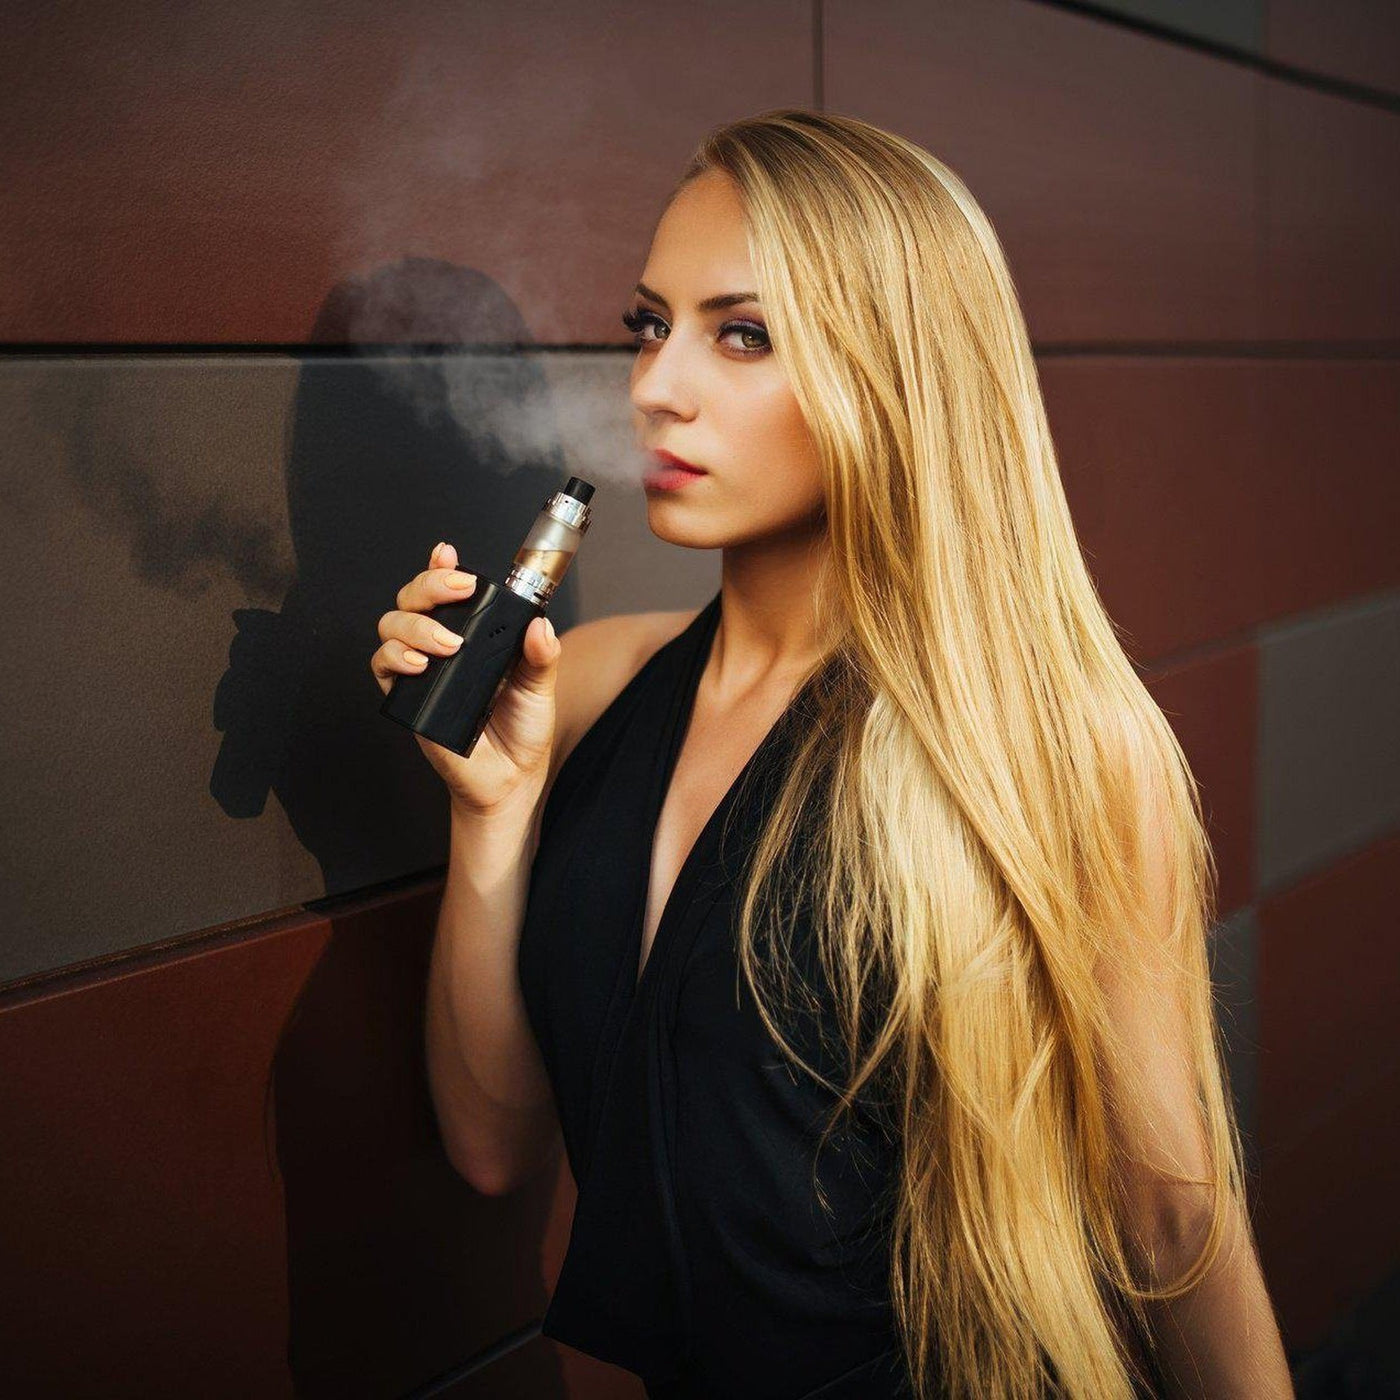 Can You Vape Too Much and Other Common Questions New Customers Ask-Vape In The Box